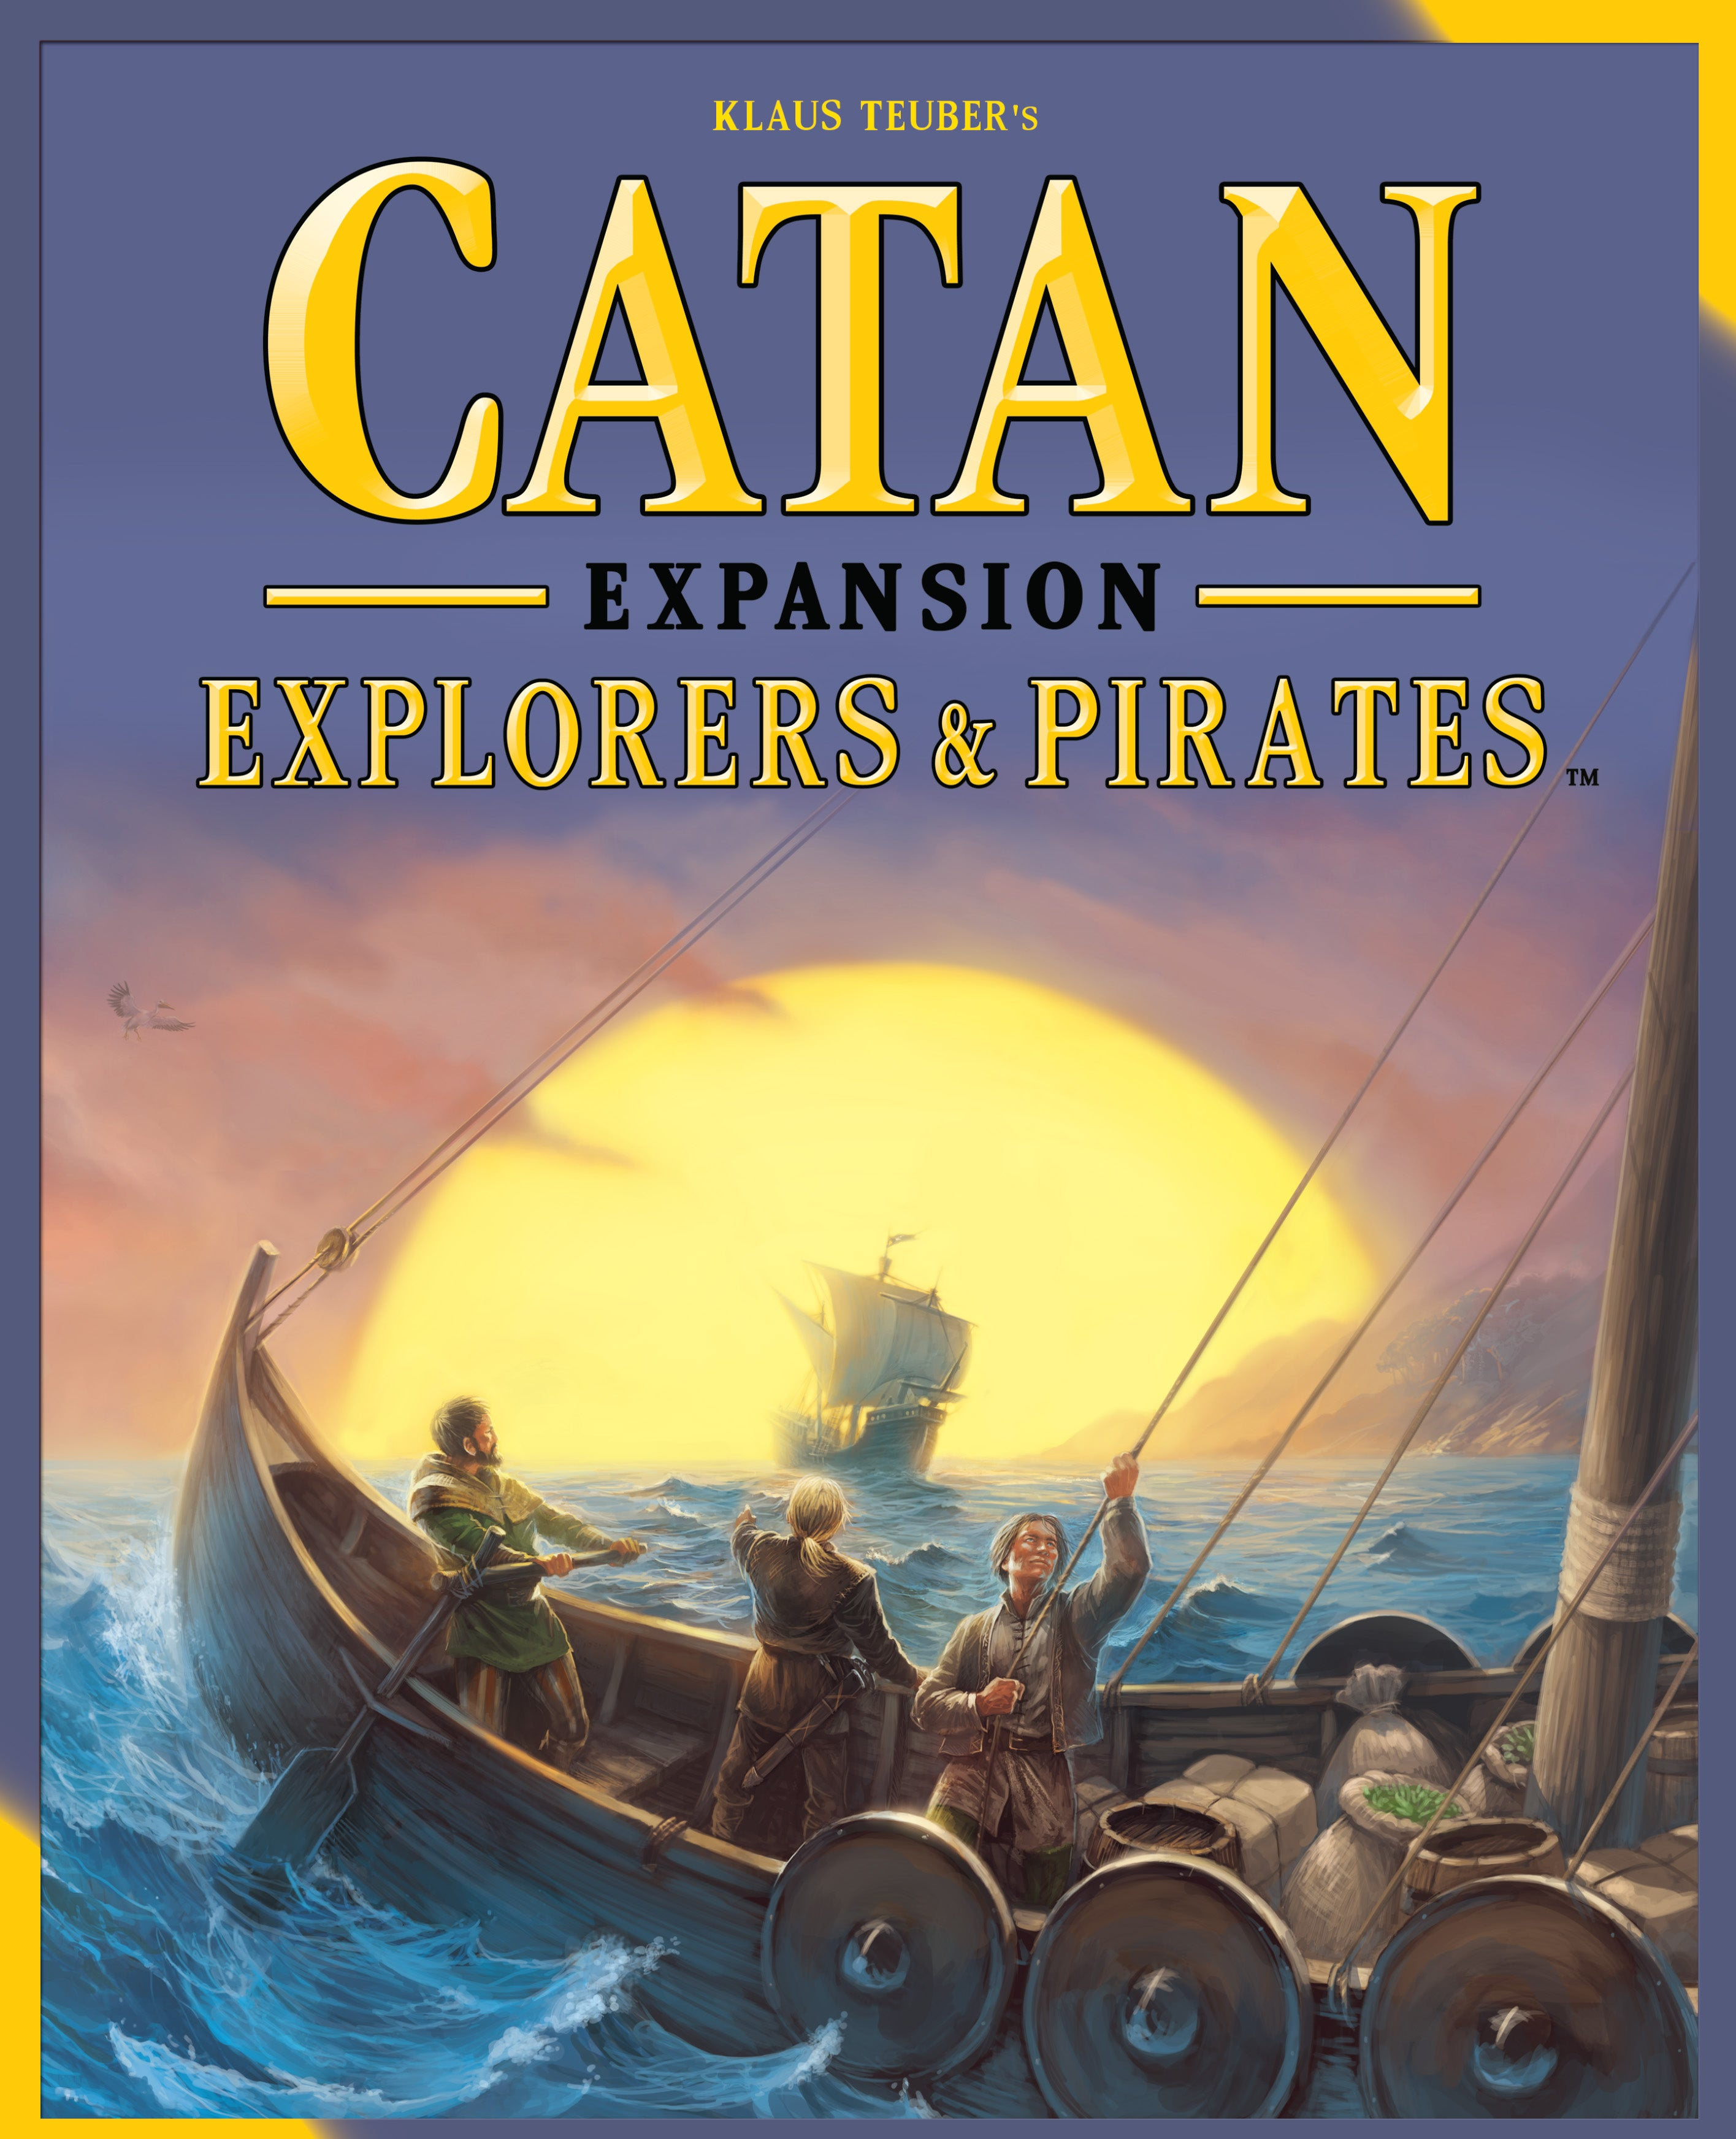 Catan Explorers and Pirates Expansion | Phoenix Comics and Games